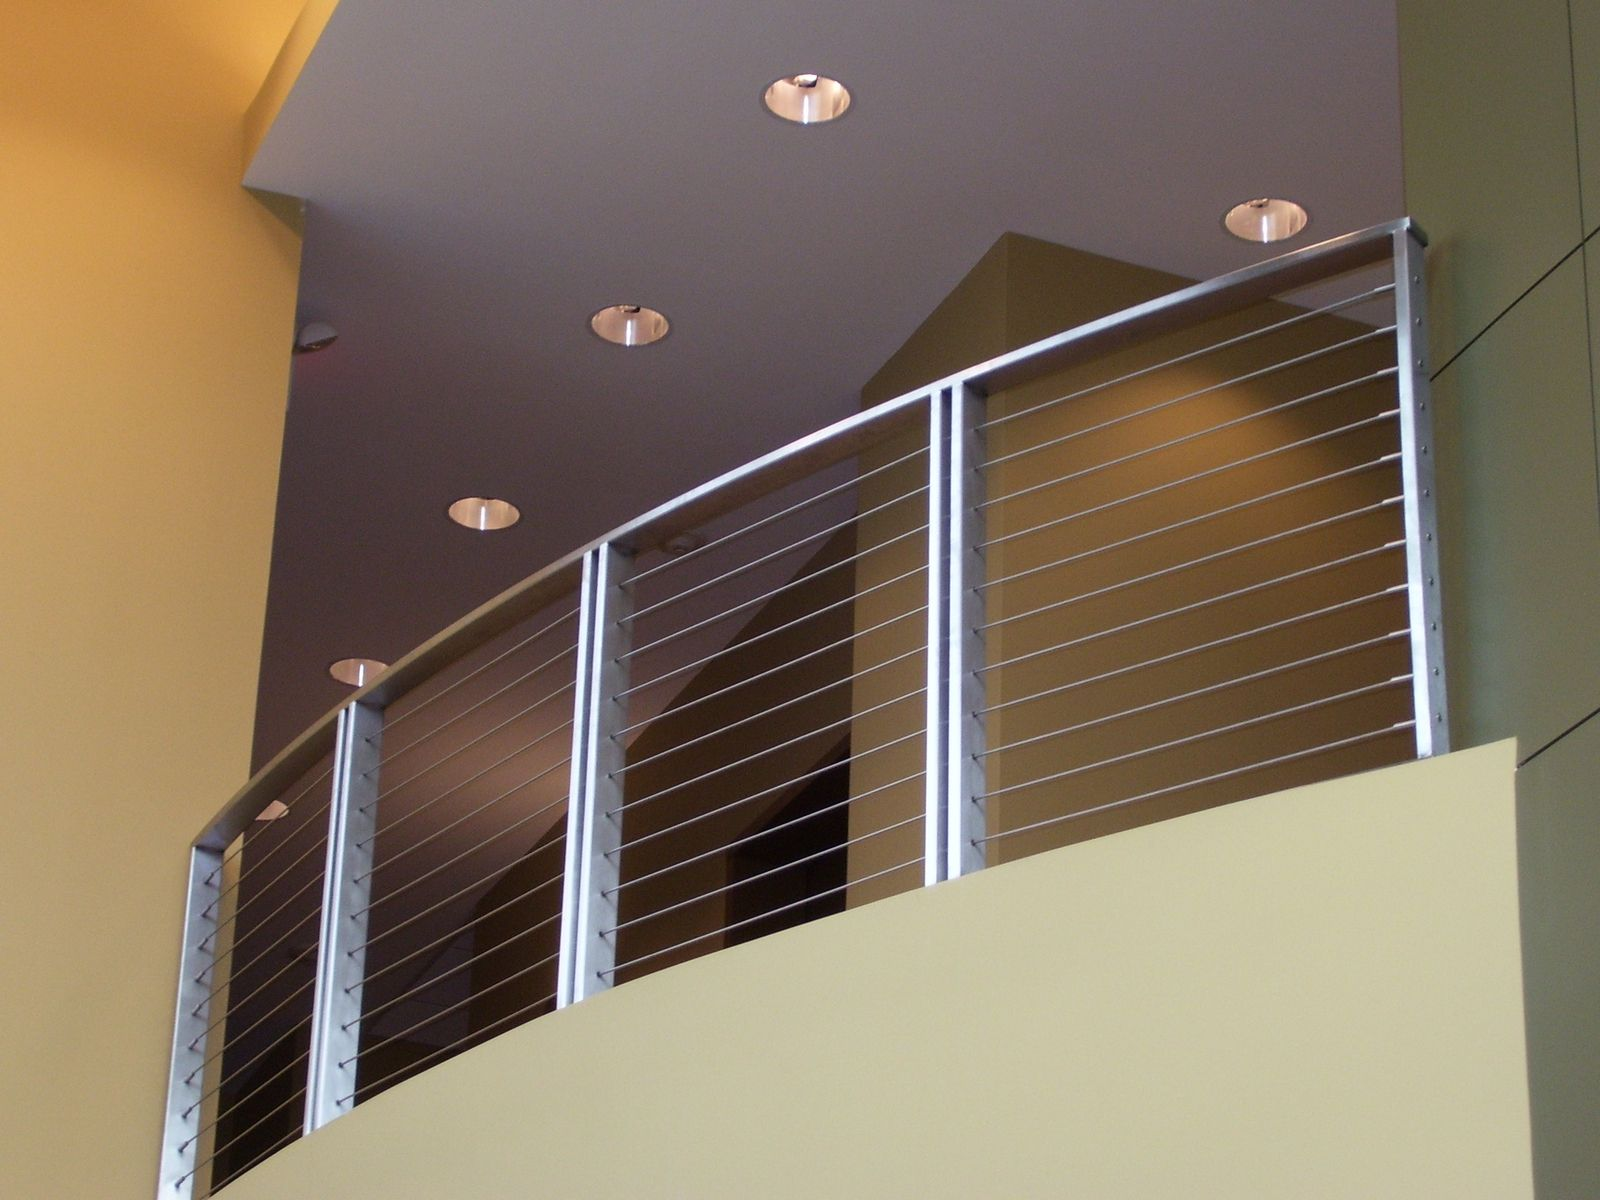 1000+ images about Stairs / ailings on Pinterest - ^